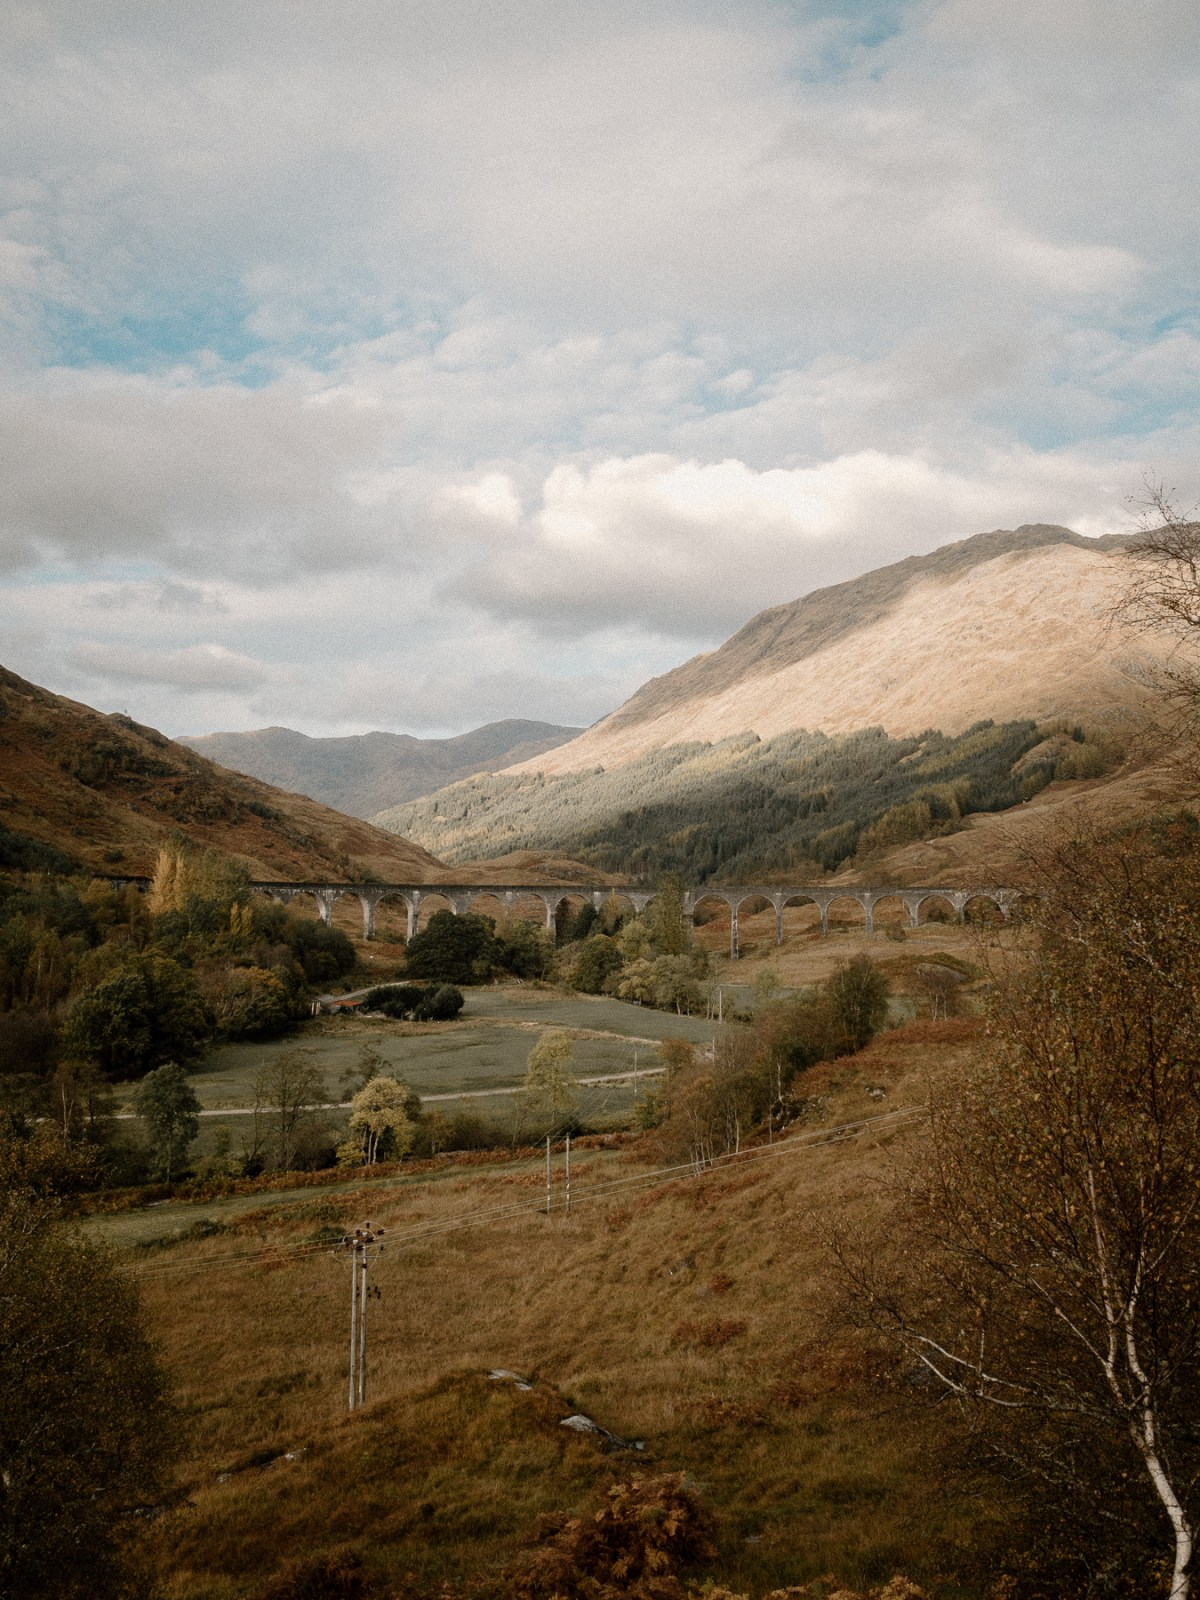 Views of Glenfinnan Viaduct | A One Week Scottish Highlands Travel Itinerary | a detailed account of exactly what we did to make the best 7 day roadtrip through the Scottish Highlands | W&S